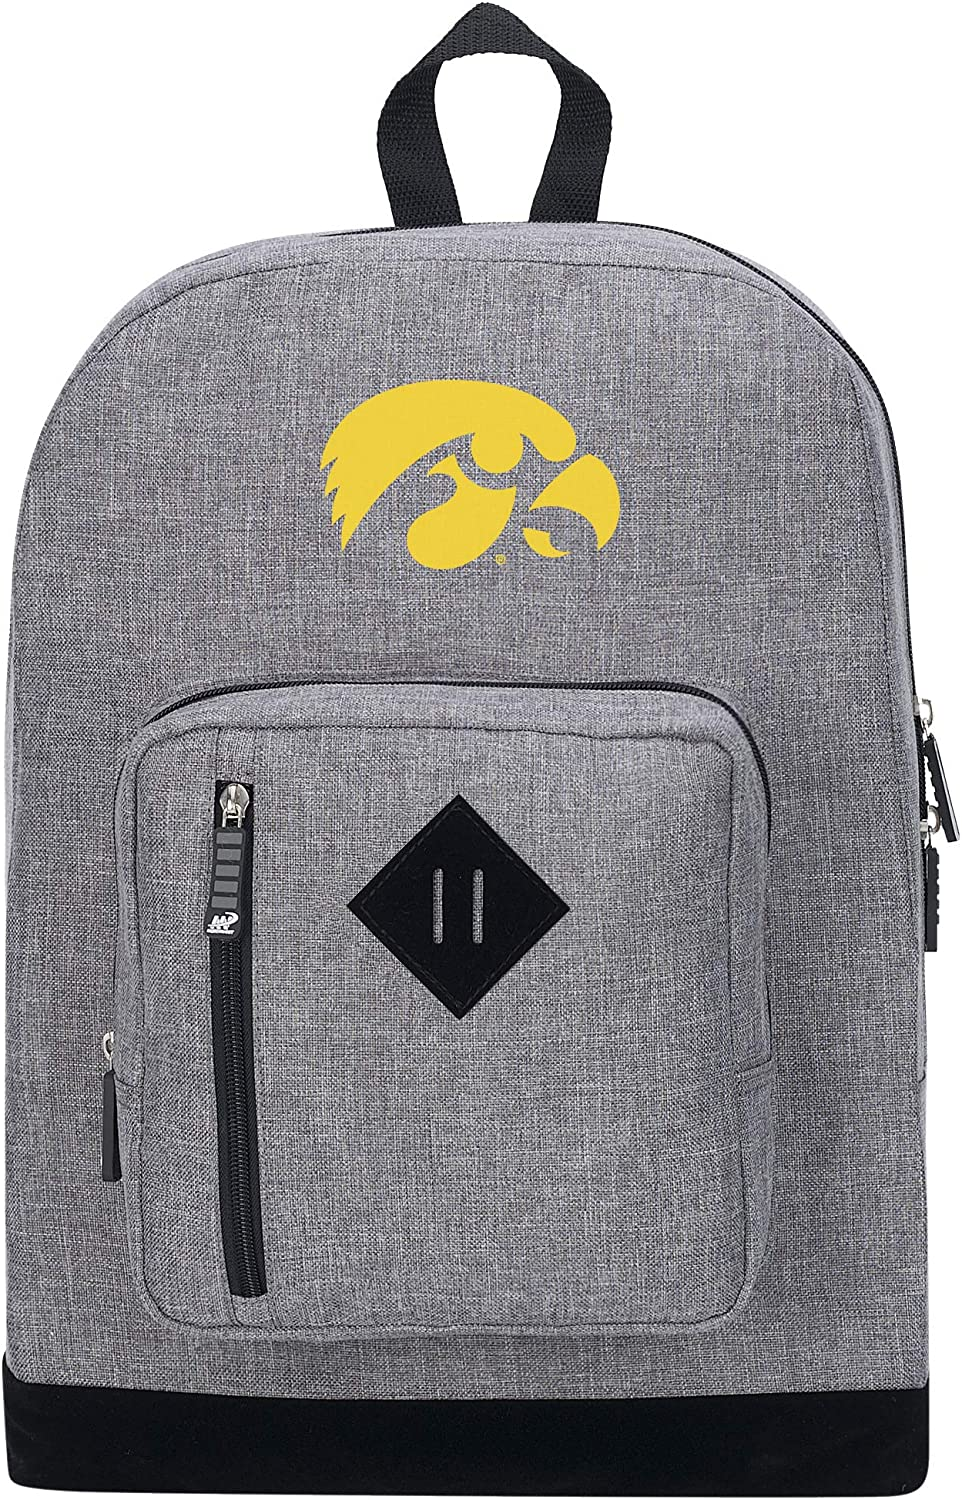 Officially Licensed NCAA Playbook Backpack Multi Color 18 x 5 x 13